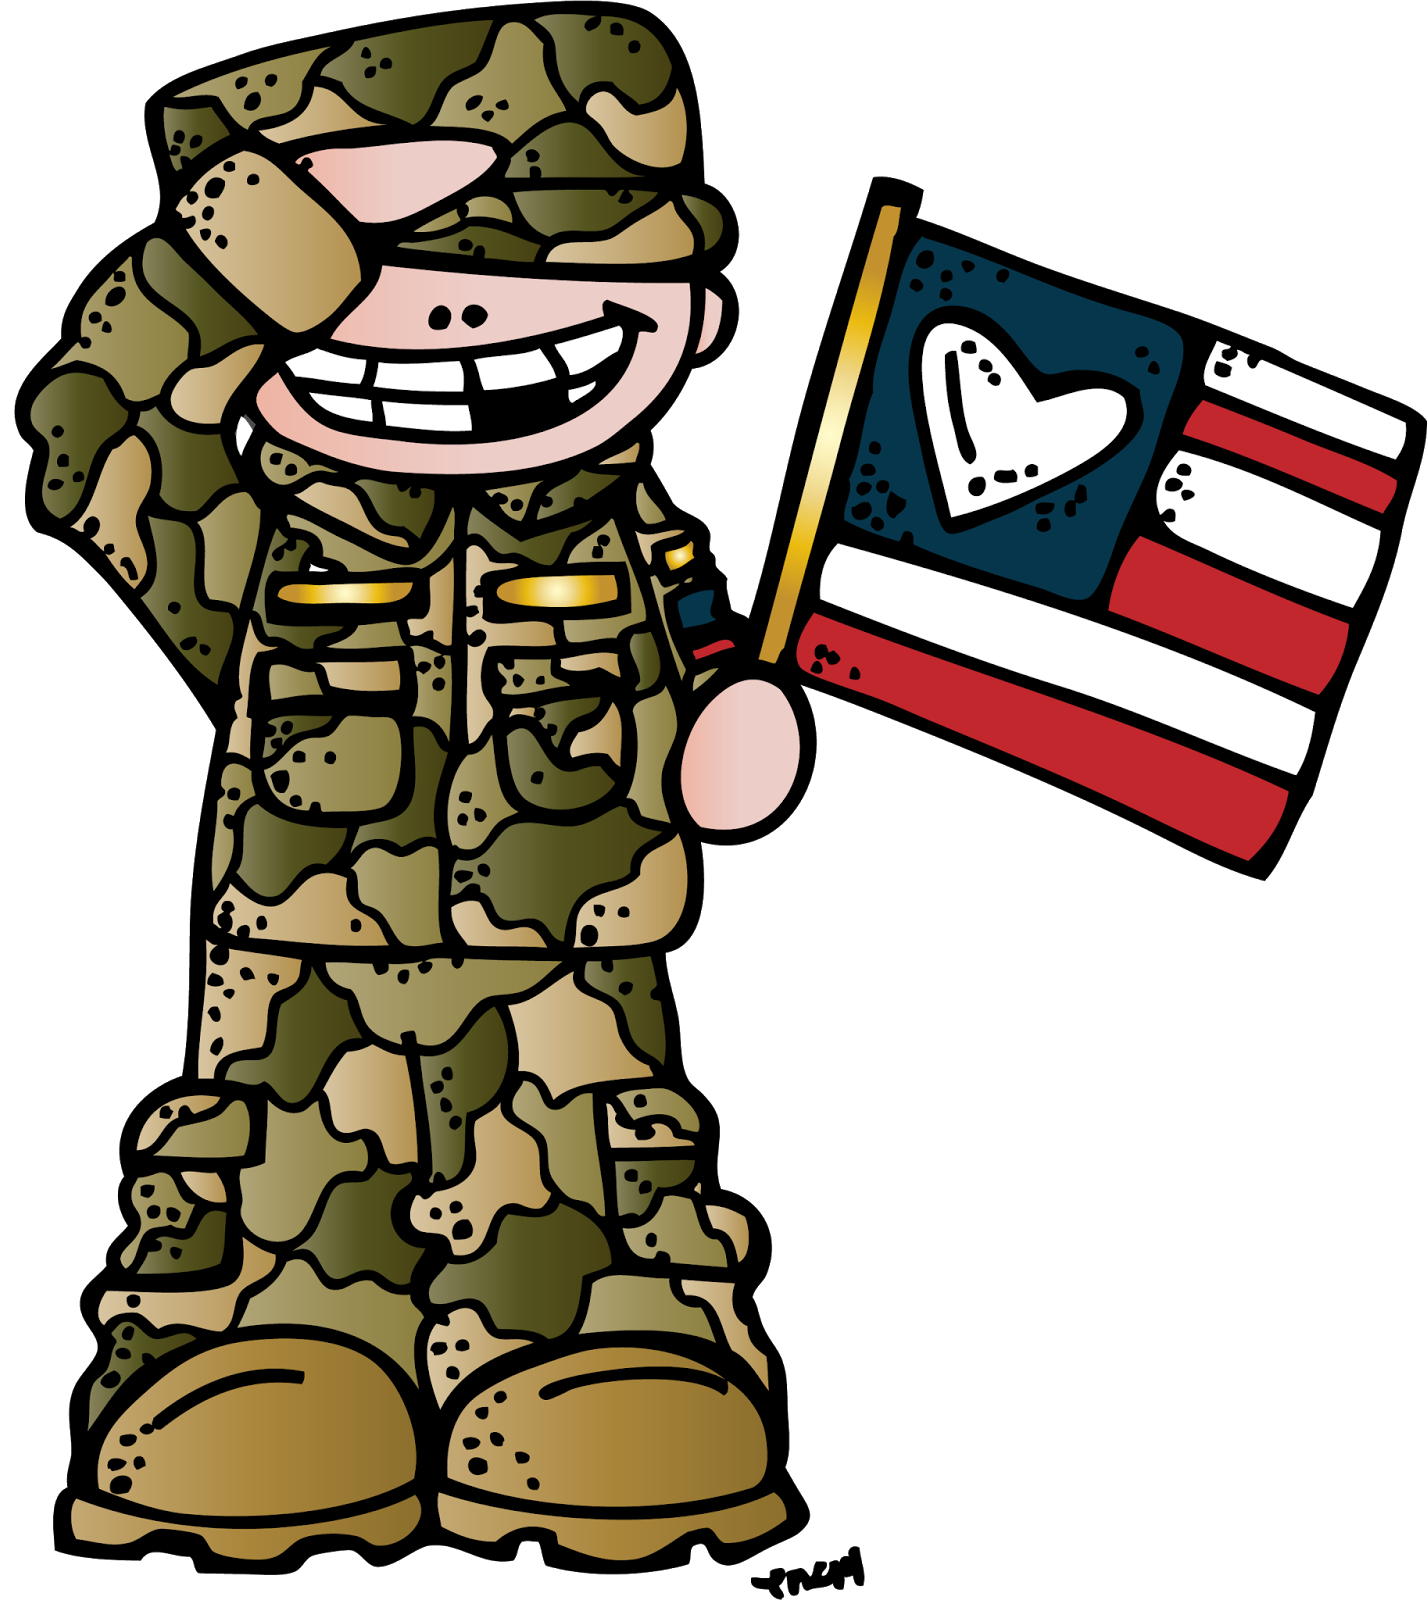 Soldier clipart kid On patriotic 9/11 Find Classroom